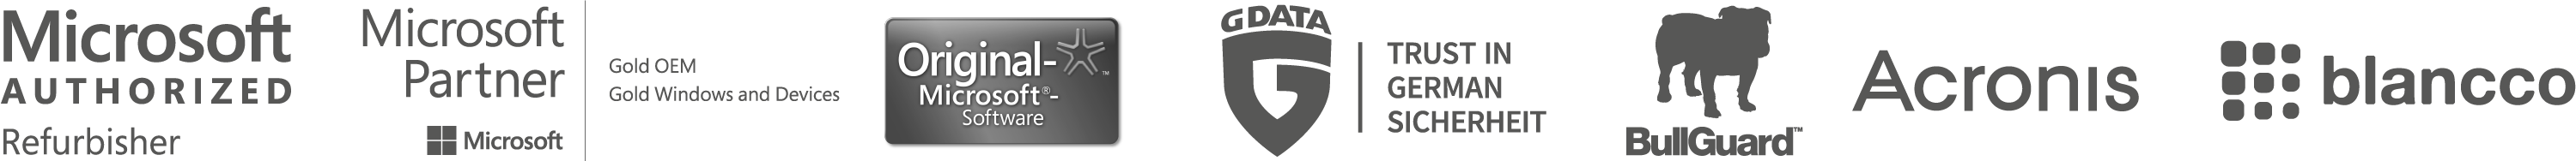 GSD-Partner-Logos-Grey.png